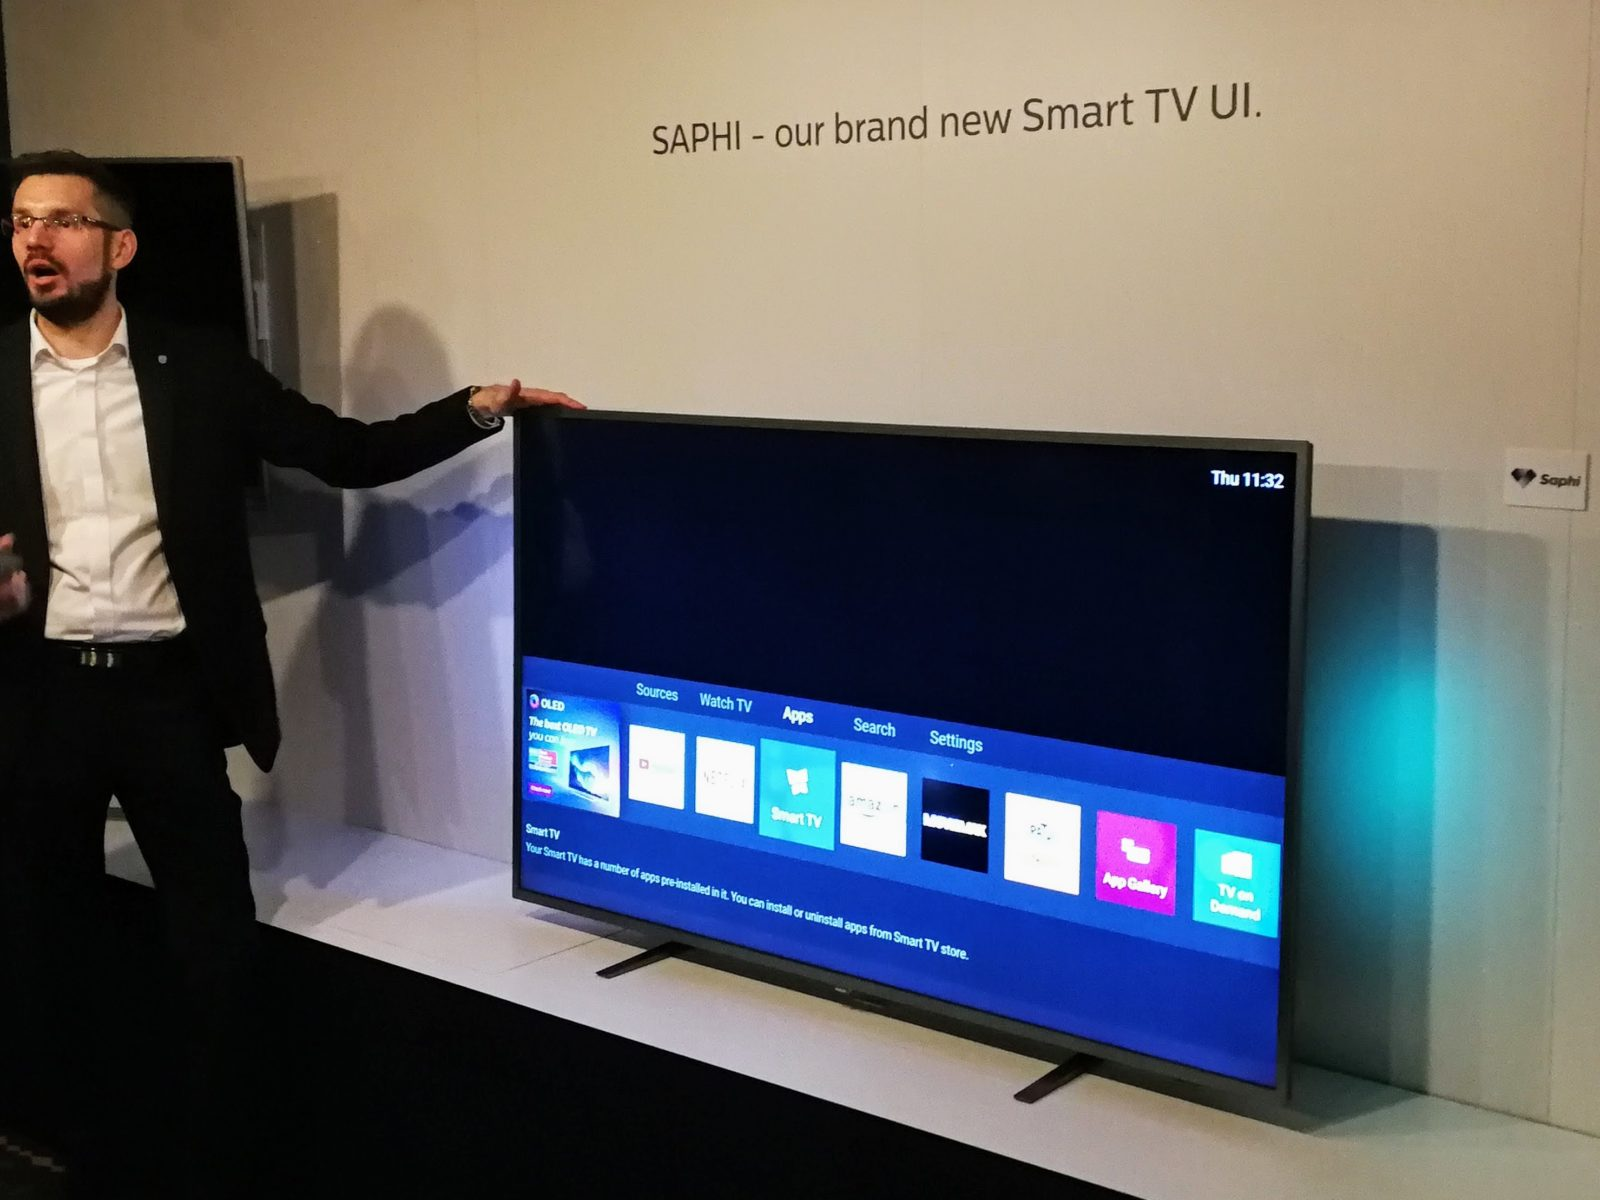 Philips TV 2018 Saphi smart tv